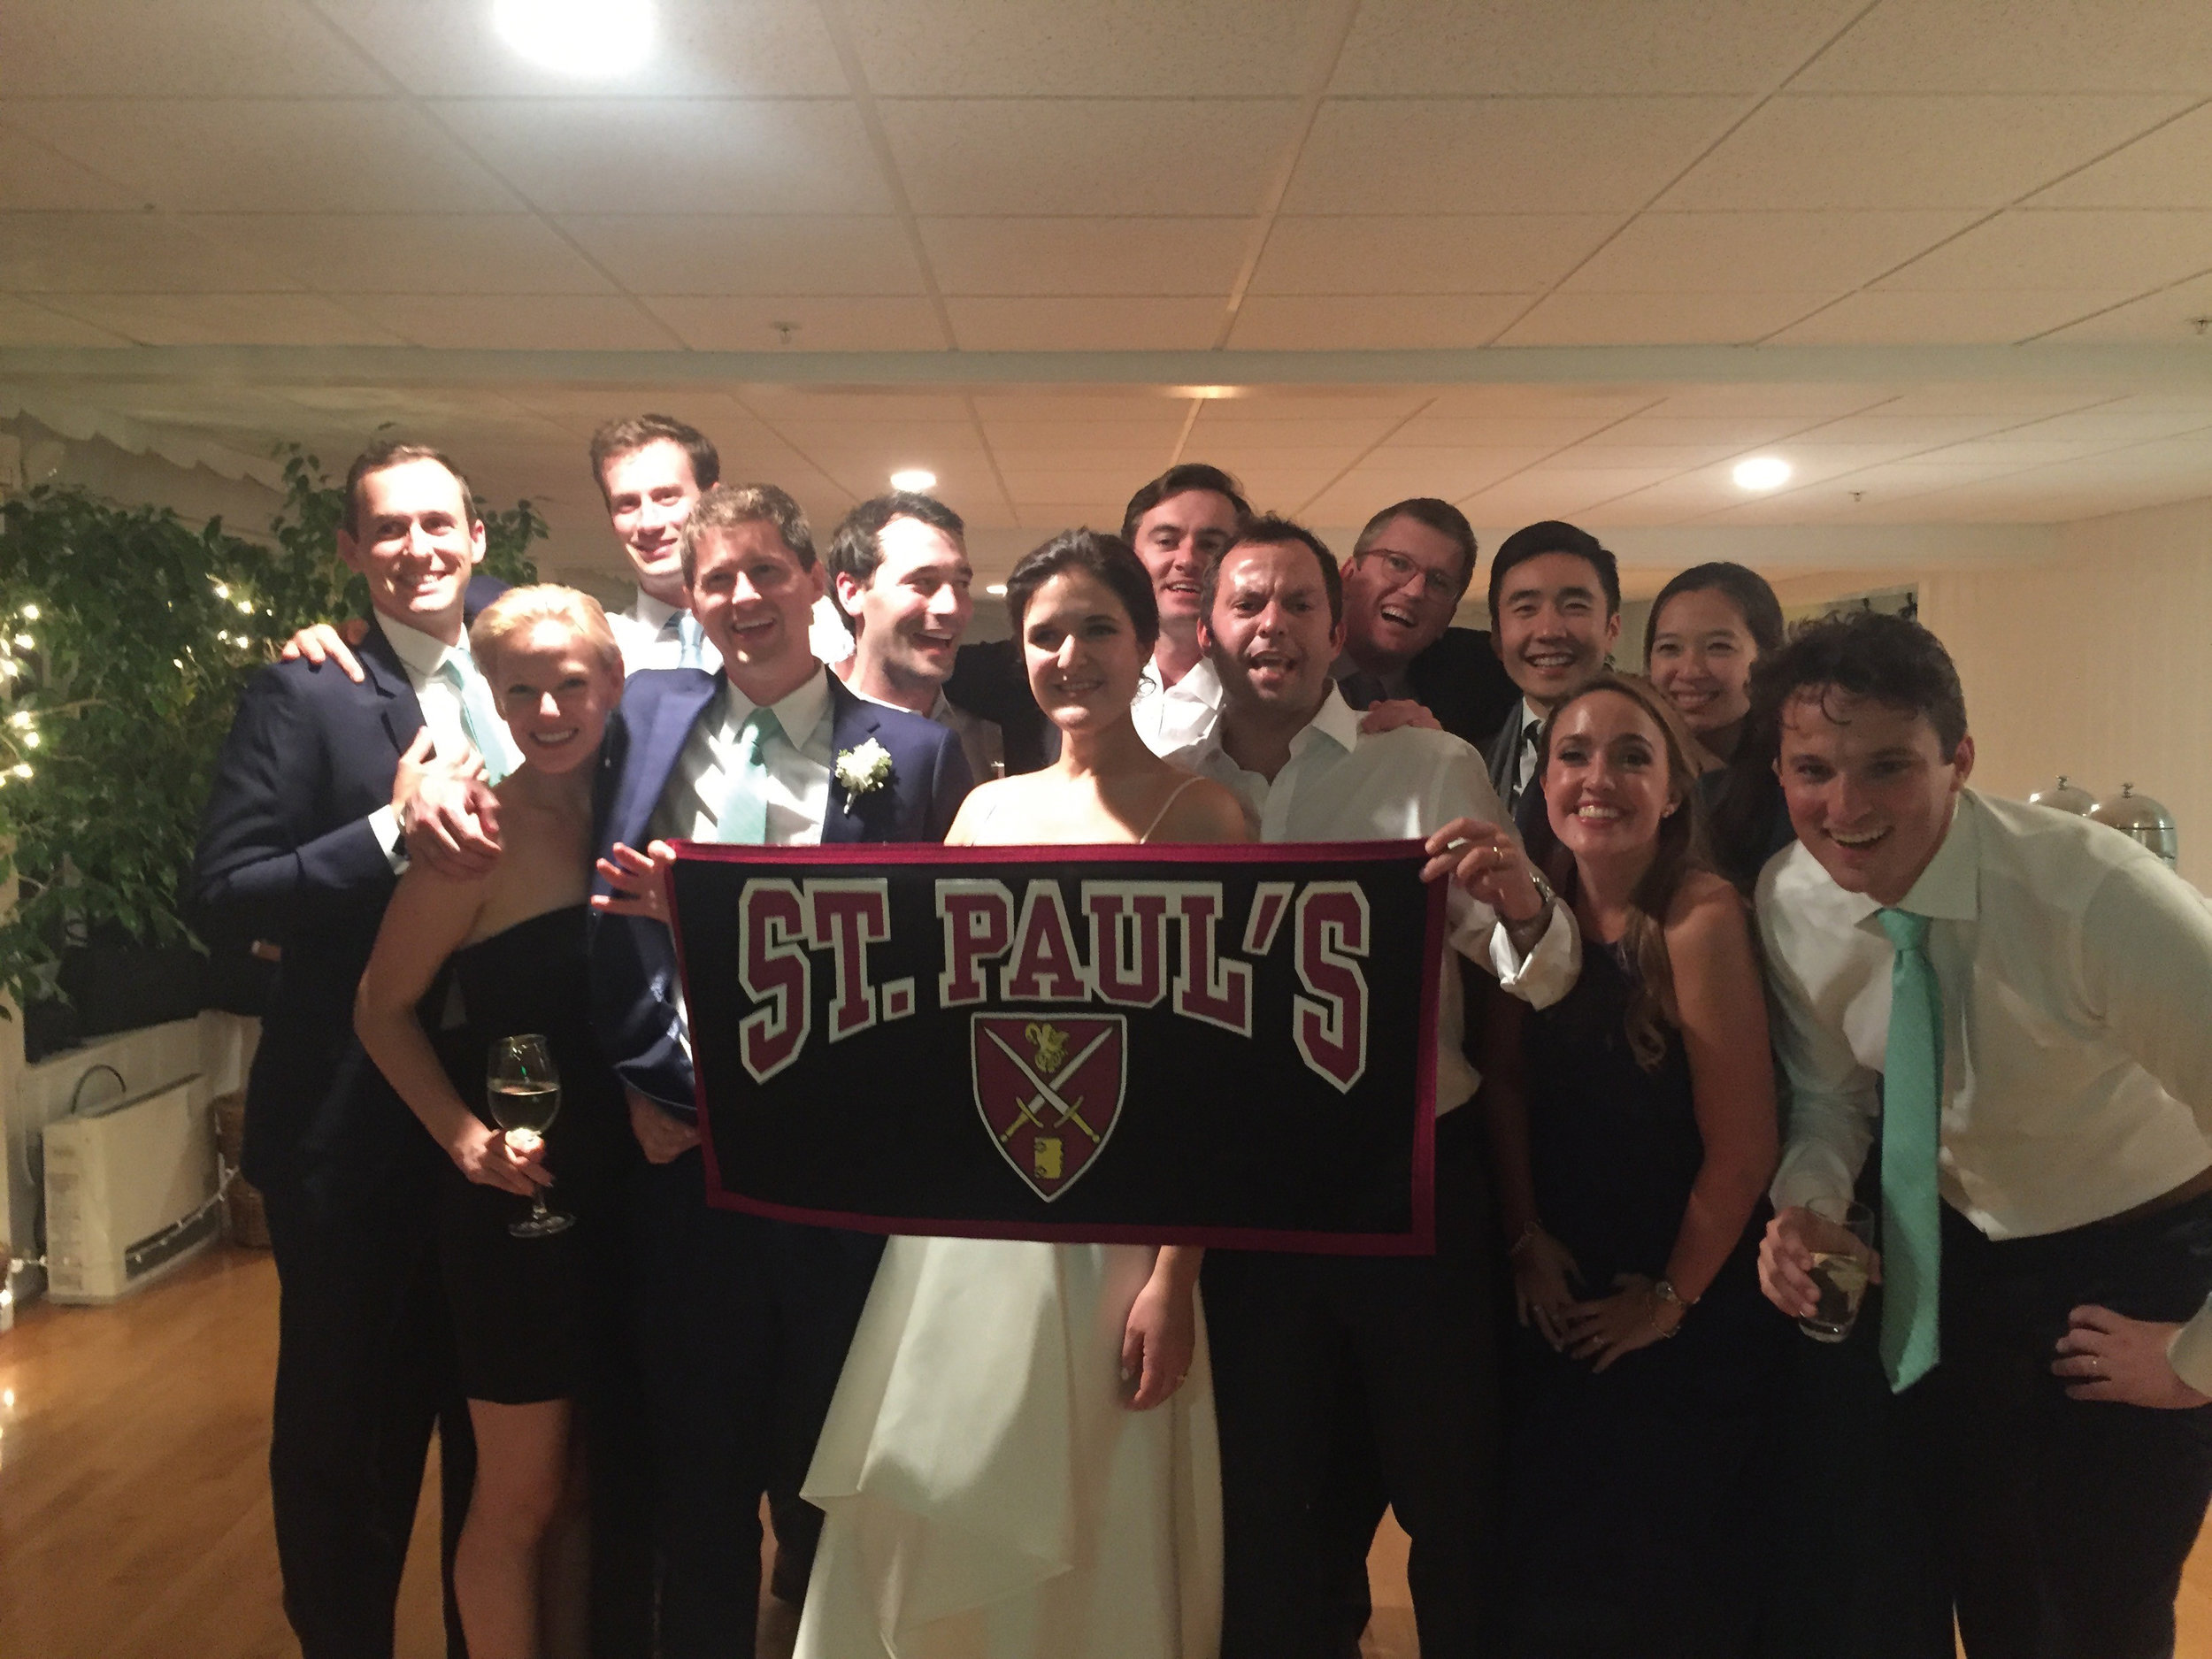 Christopher Hornor Hickey '05 and his bride, Beth Vogelsang Treseder, celebrated with Bowman Dickson '05, Nathaniel Green (former ASP faculty), Sam Malmberg '05 and his girlfriend, Charlie Perkins '05, Sam Moorehead '05, Oliver Embry '05, Ken Wong '05 and his wife, and Charlotte Hickey '07 and her husband, Jérôme Vigne.